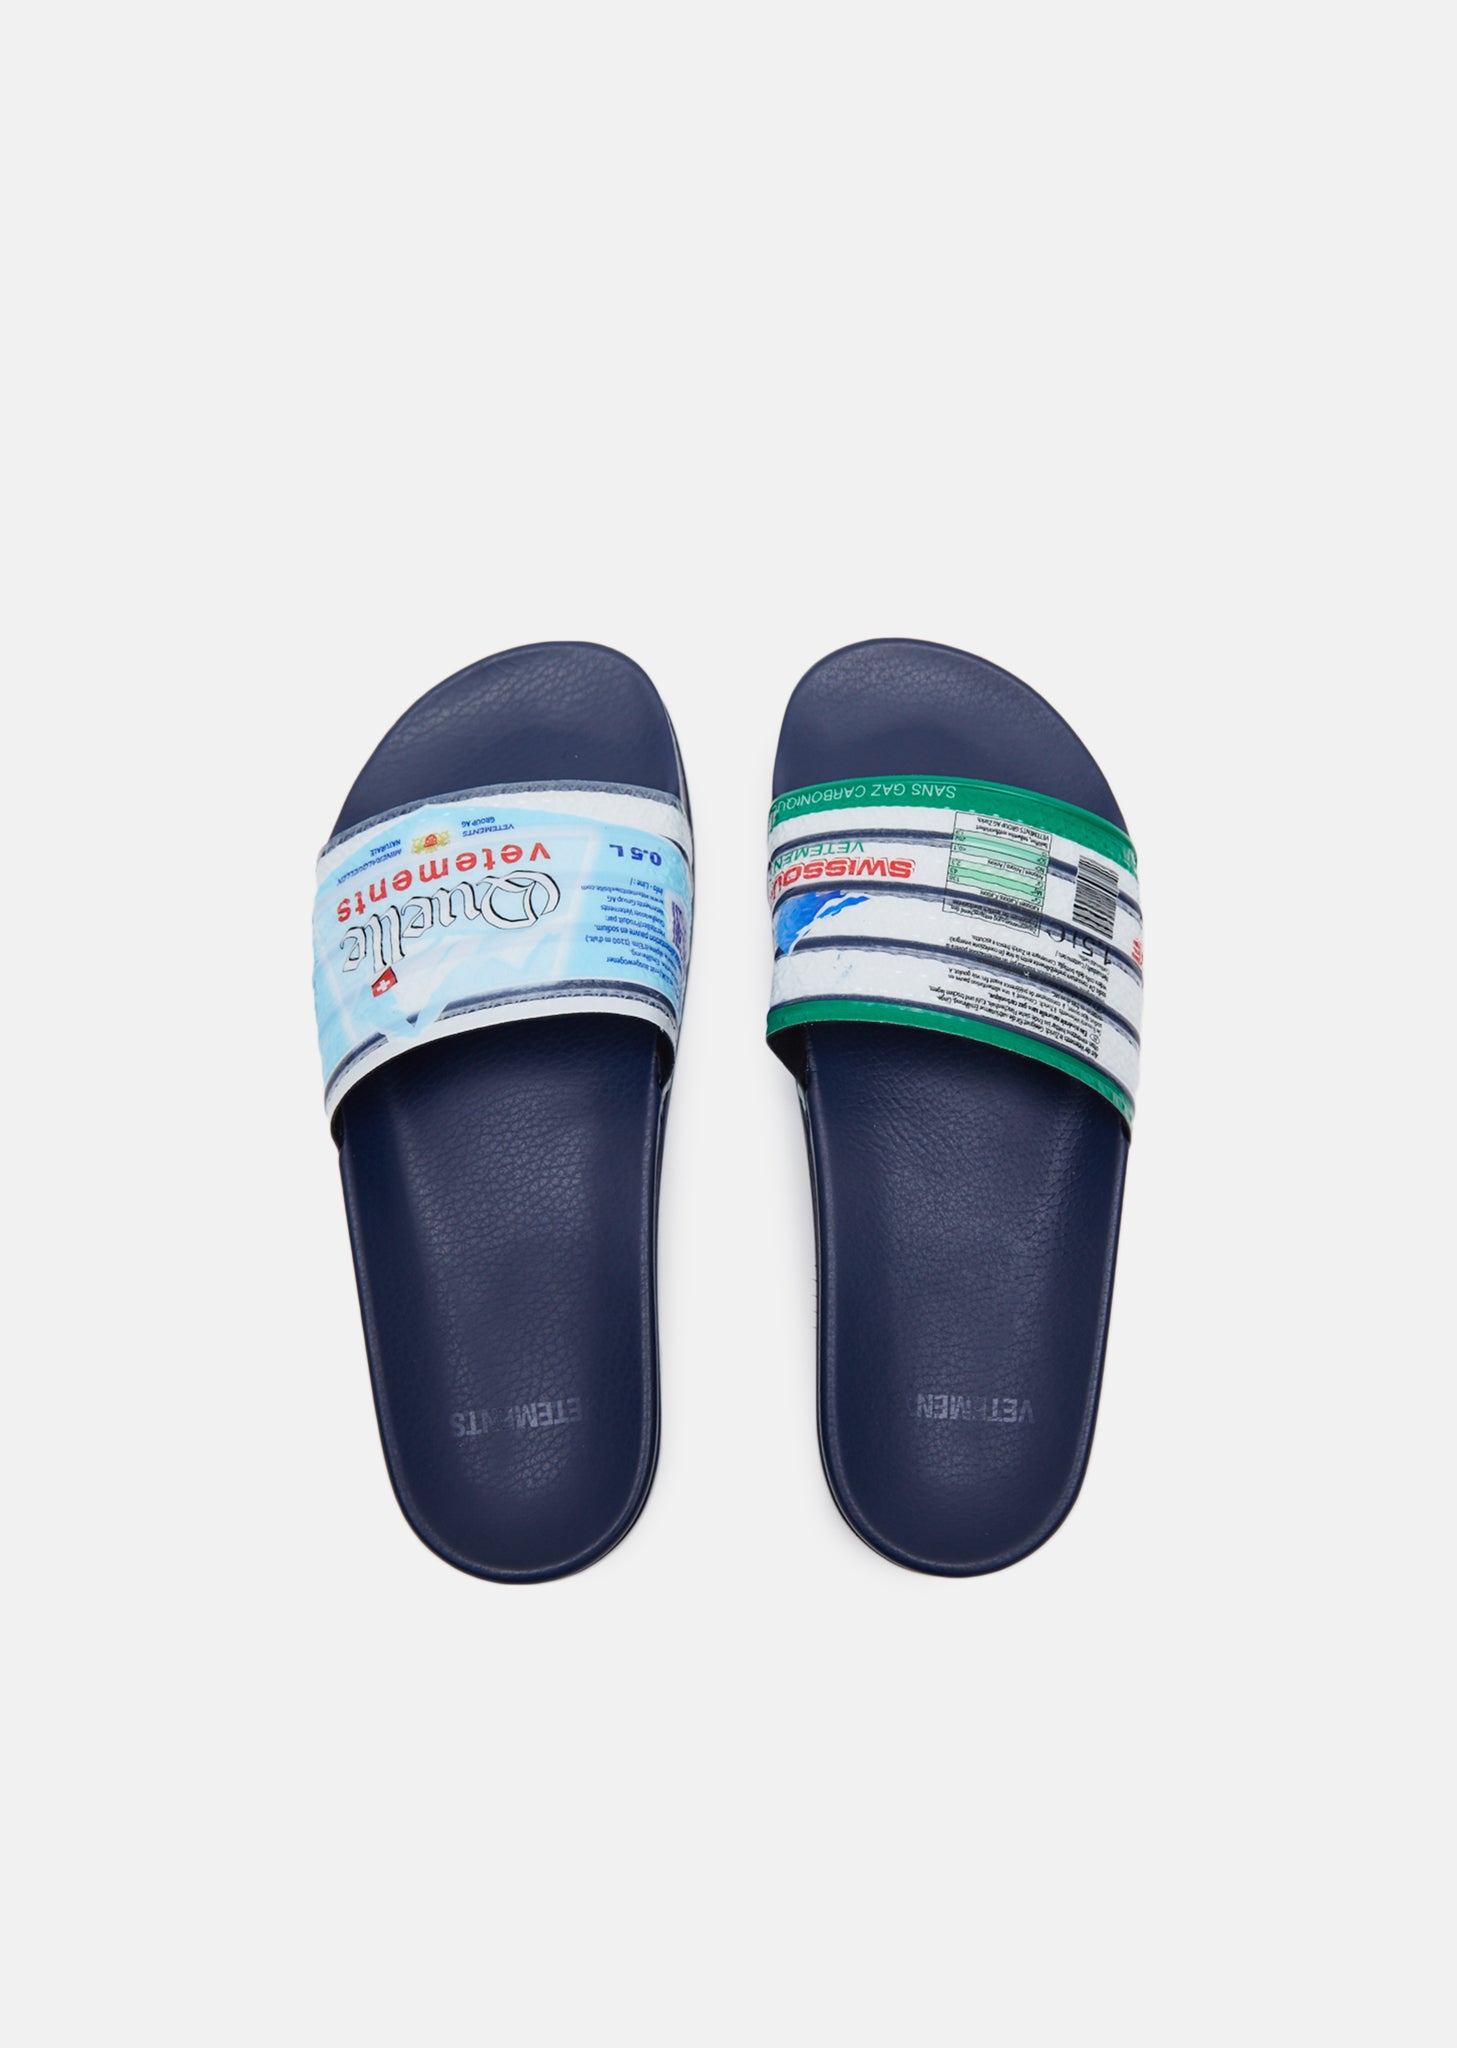 Vetements Printed slides sale affordable 2015 sale online cheap sale big sale perfect cheap online free shipping footlocker pictures 3G2iXY